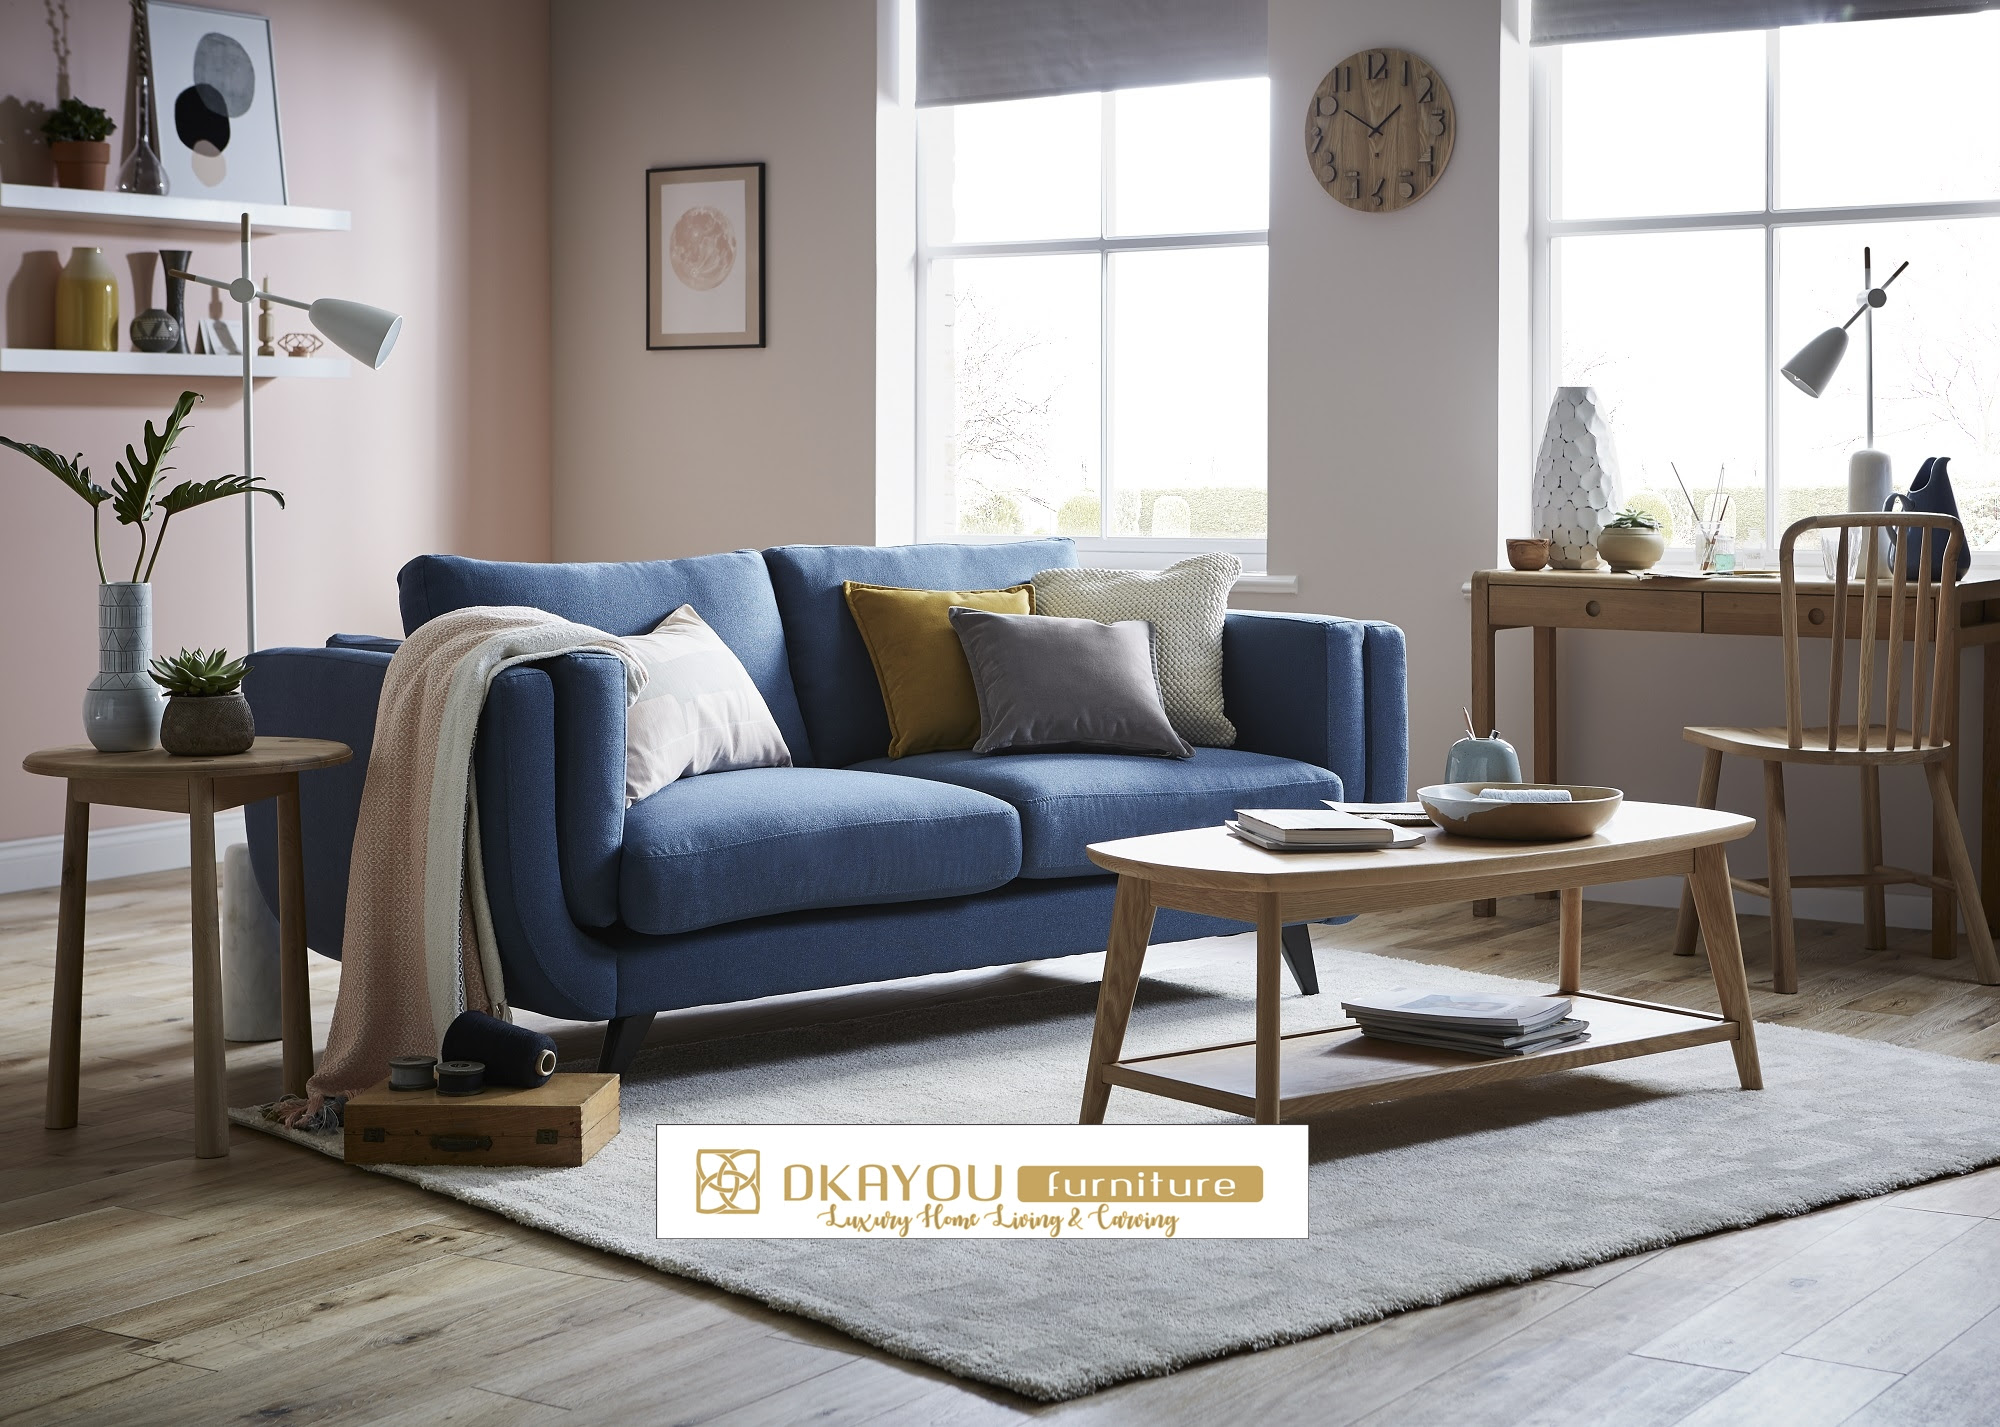 Set Kursi Sofa Tamu Minimalis Jepara Modern Dkayou Furniture Indonesia